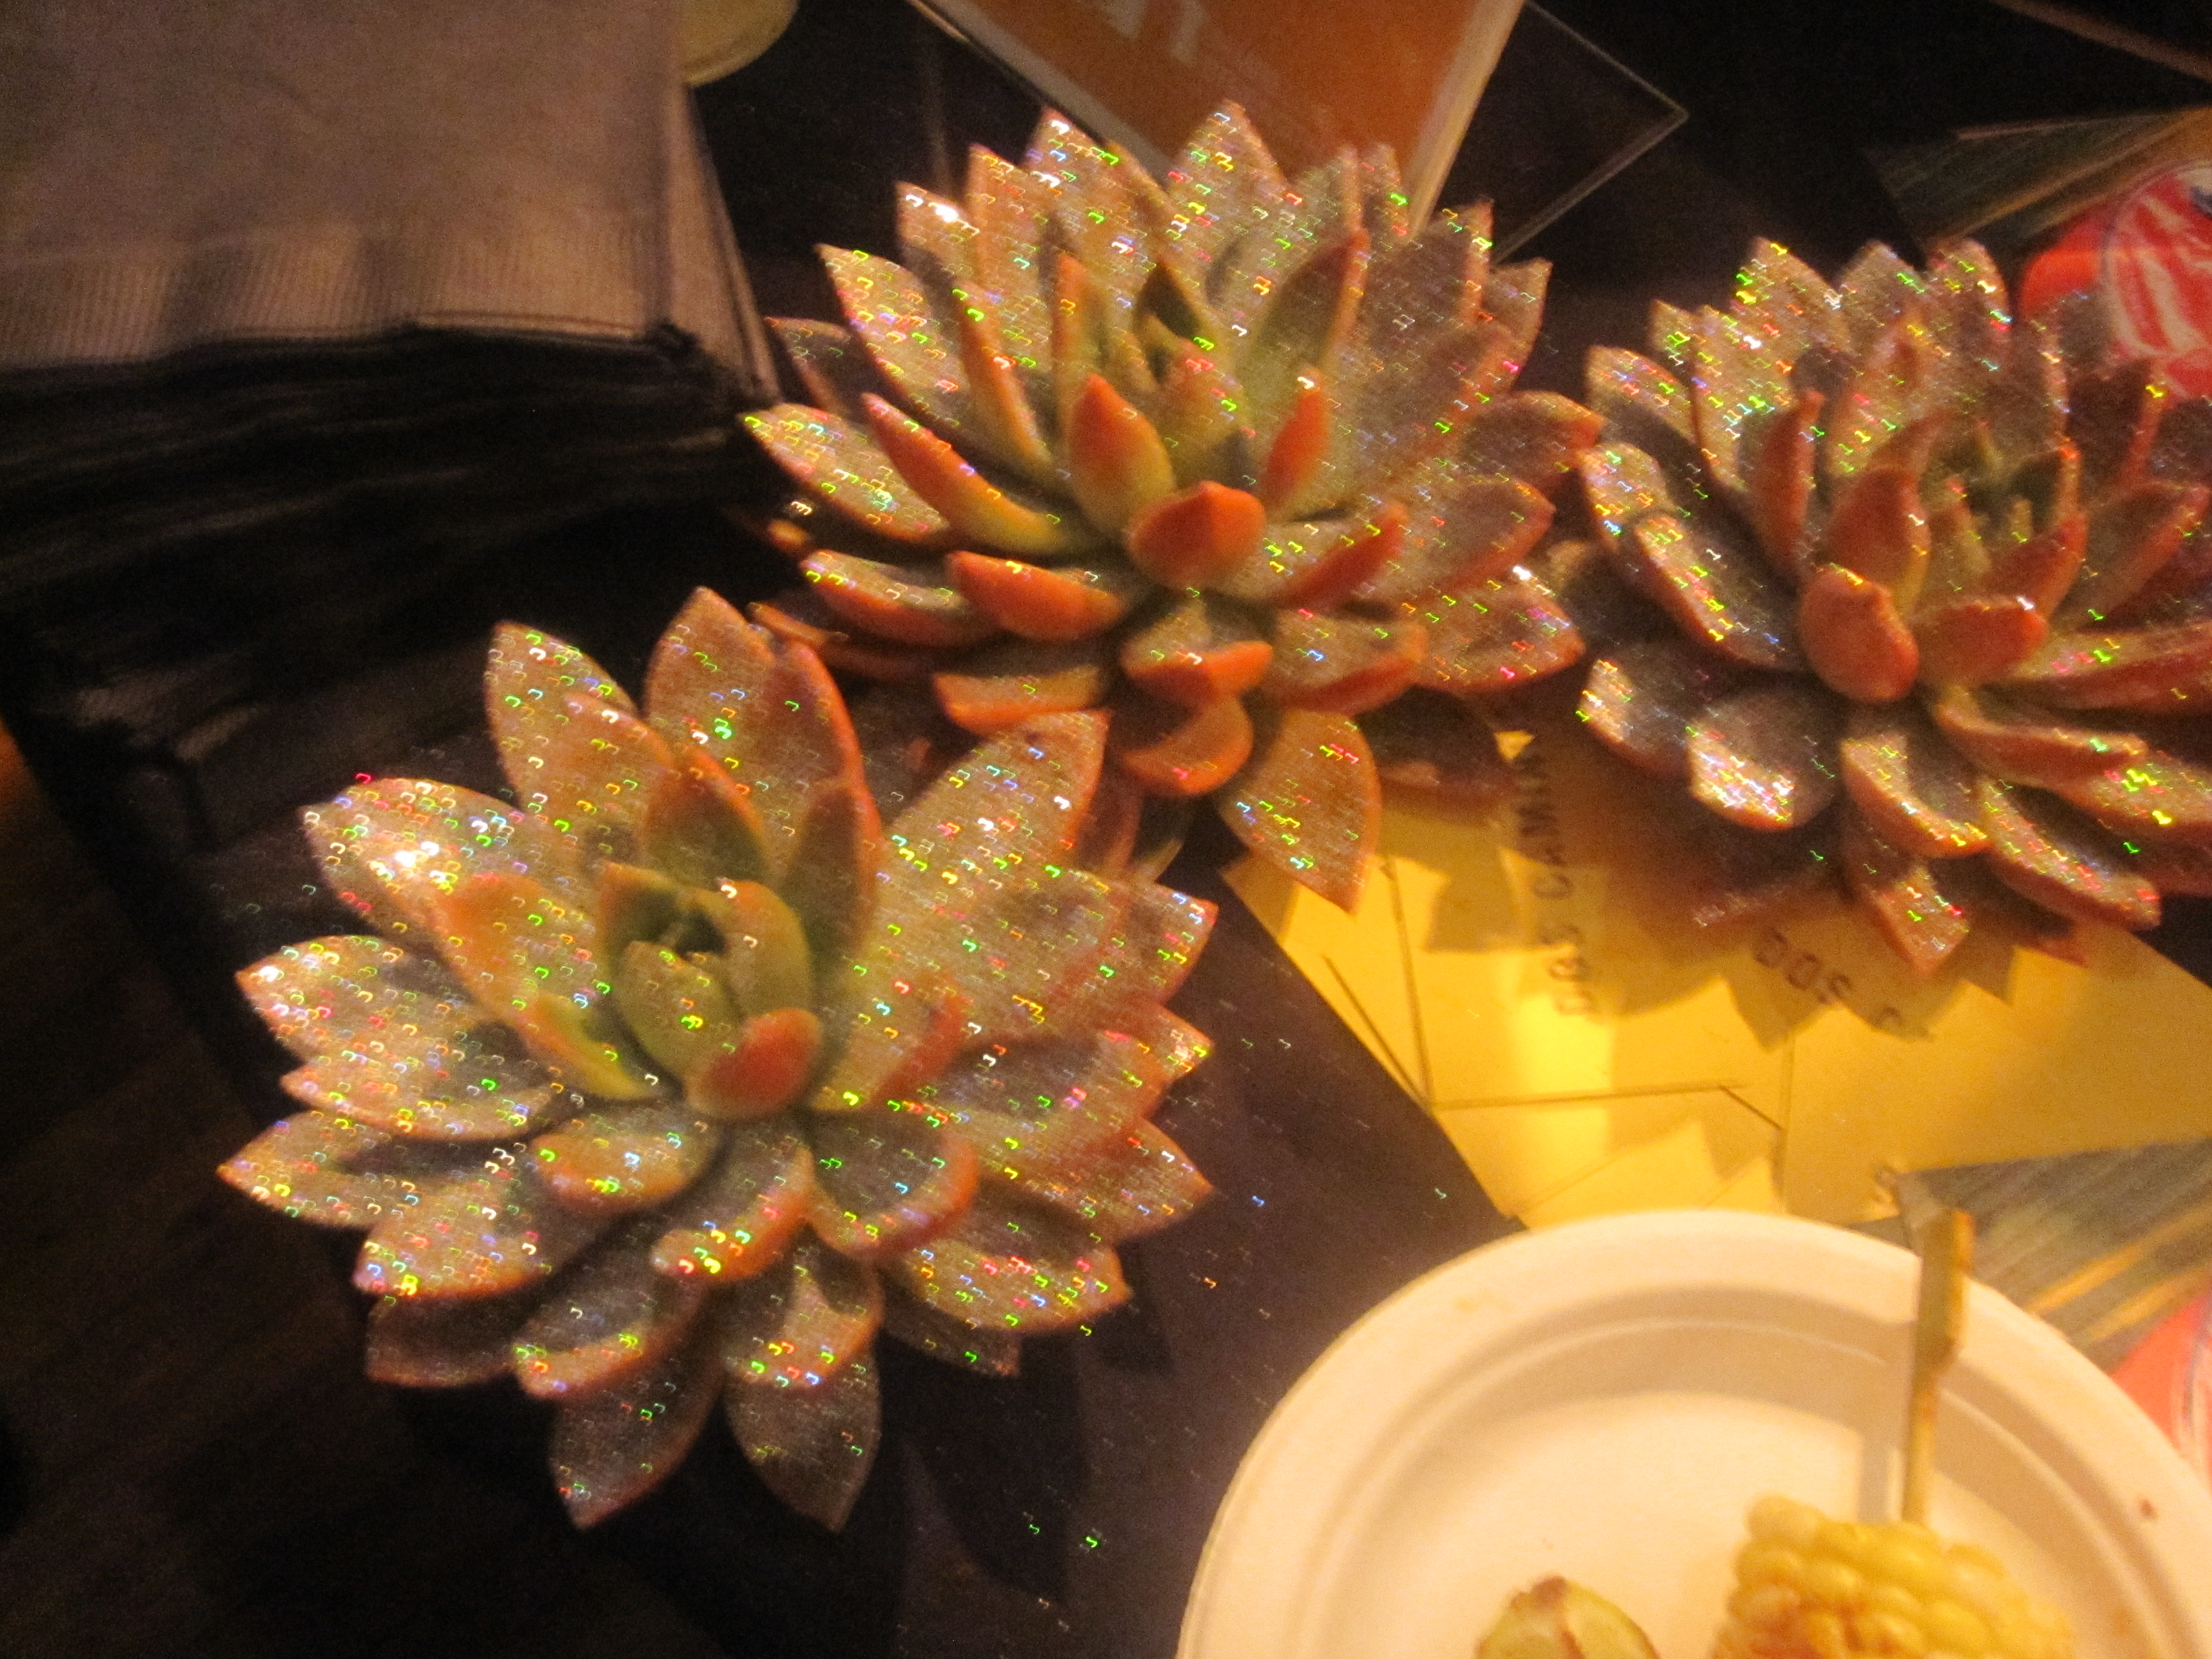 I loved this decorating idea: glittery succulents!